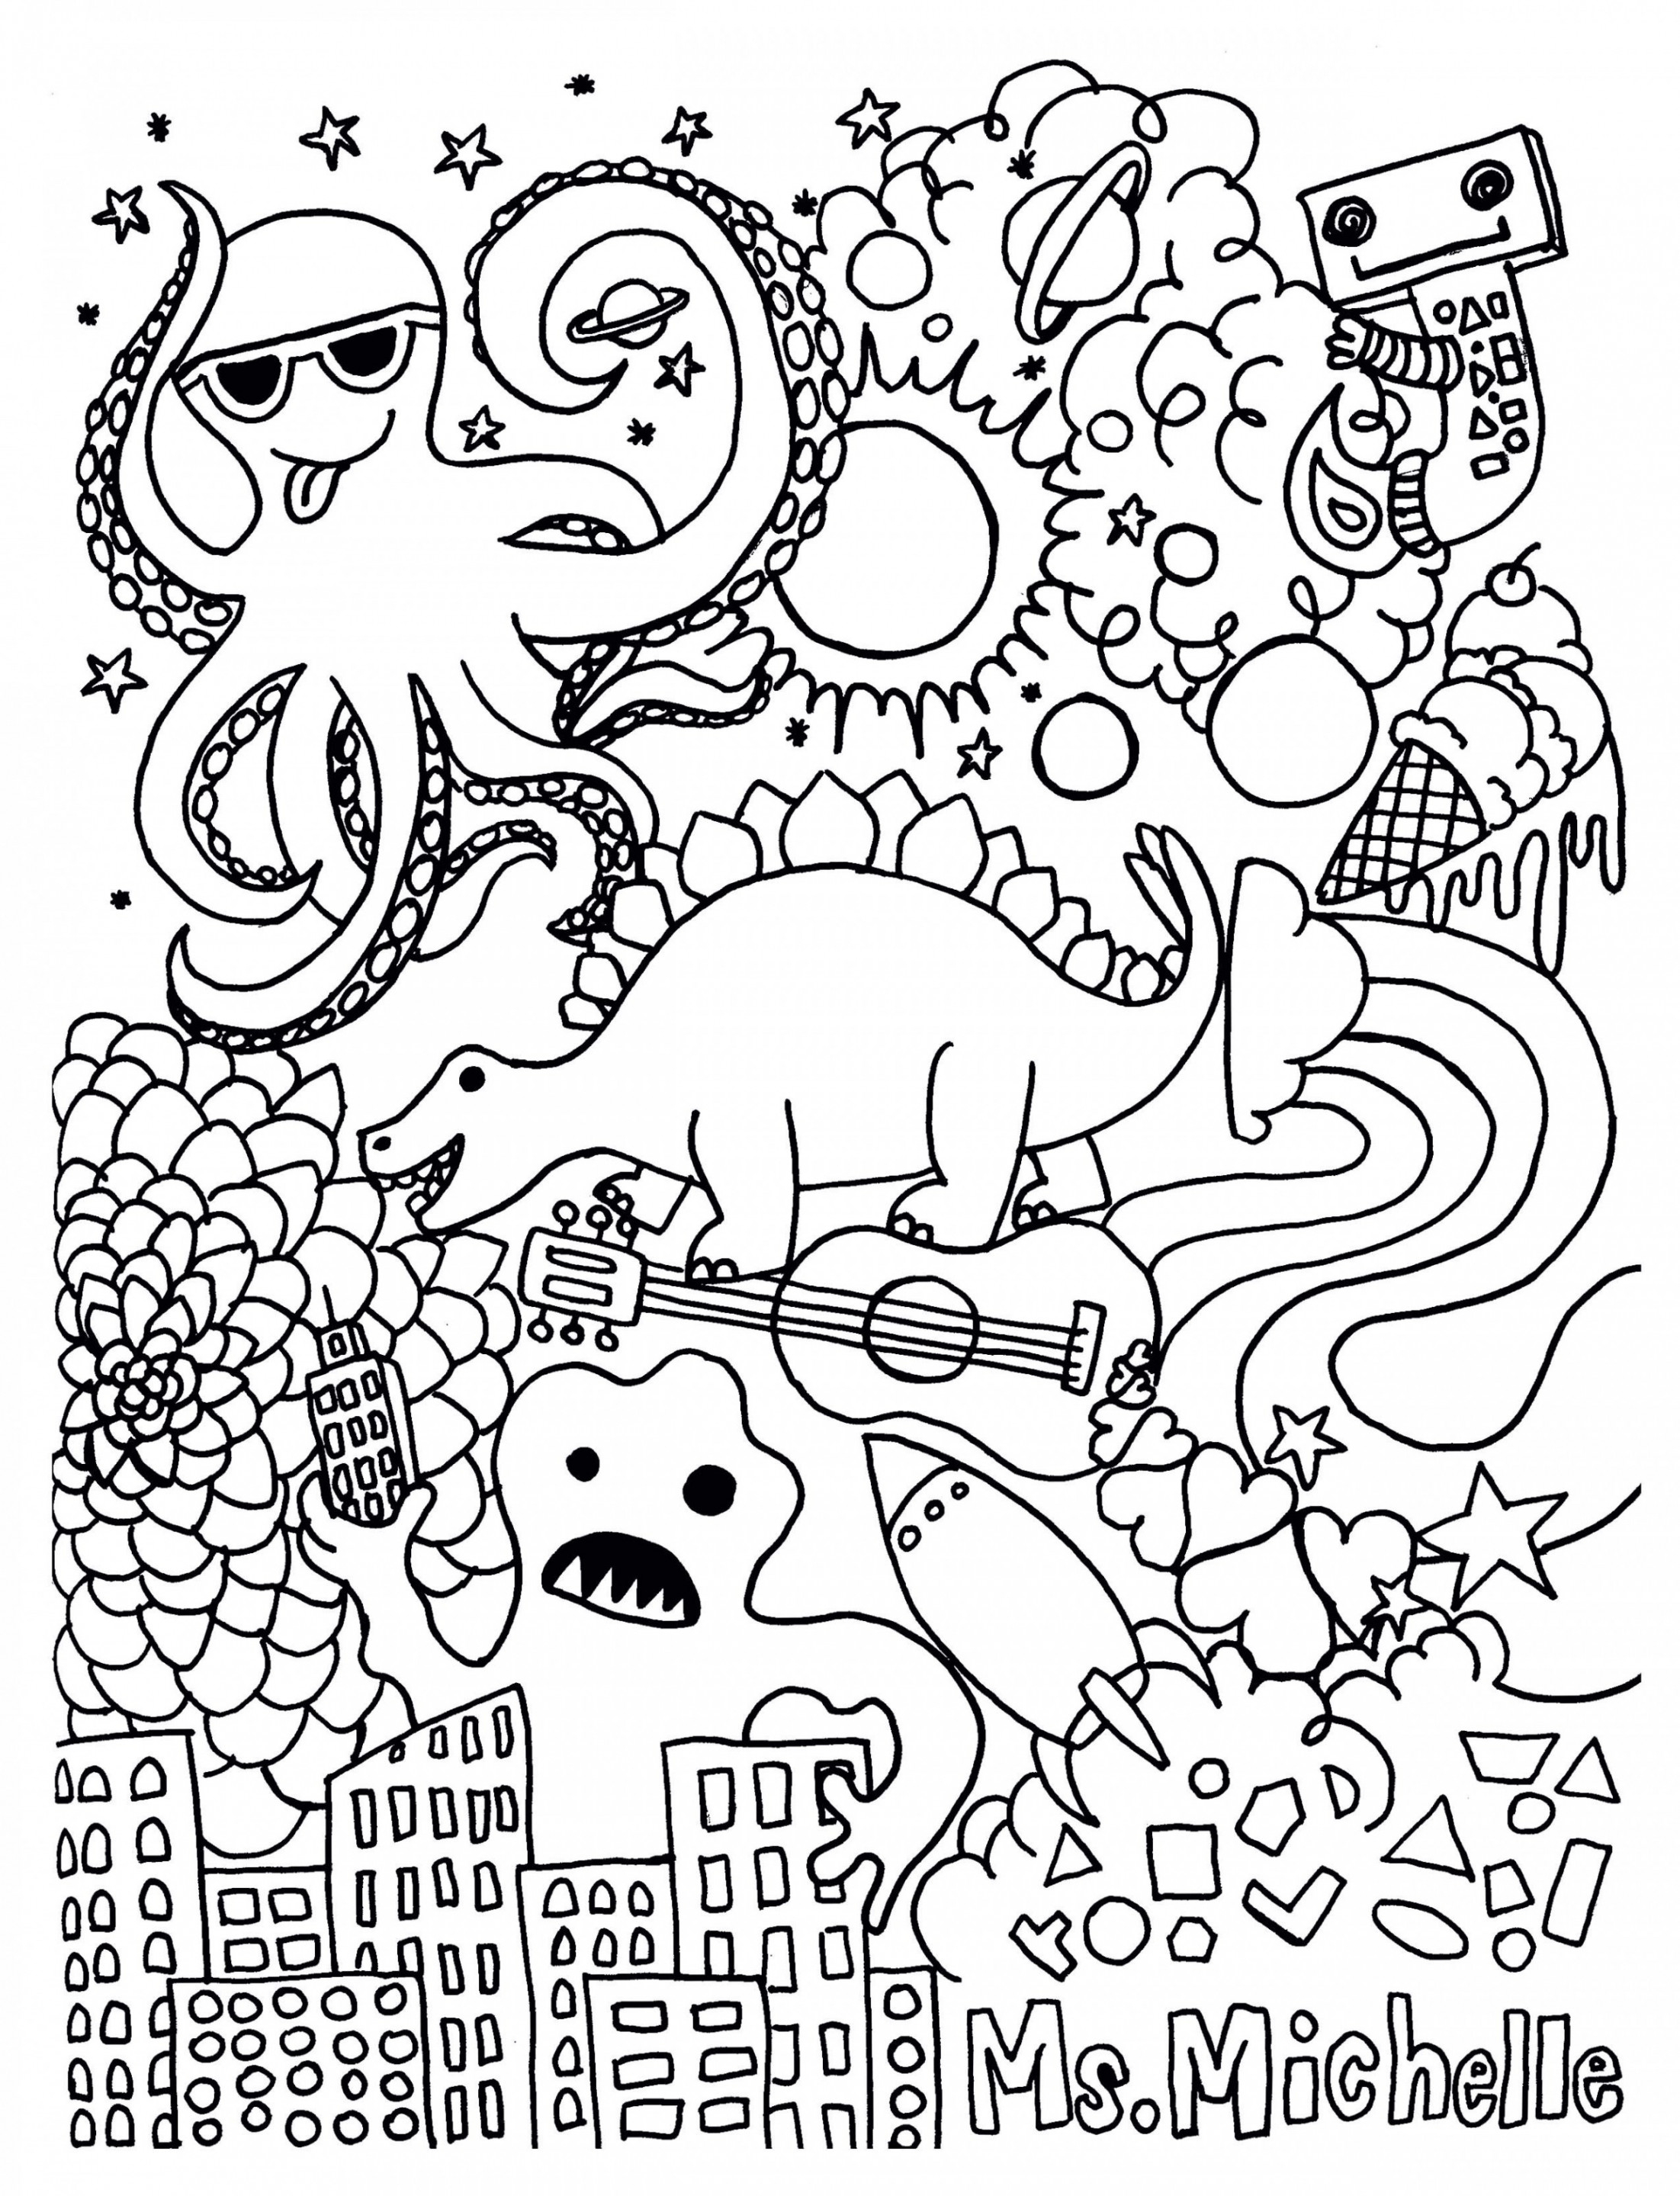 Valentines Day Coloring Pages For Adults Valentines Day Coloring Pages For Adults Collections Of Valentines